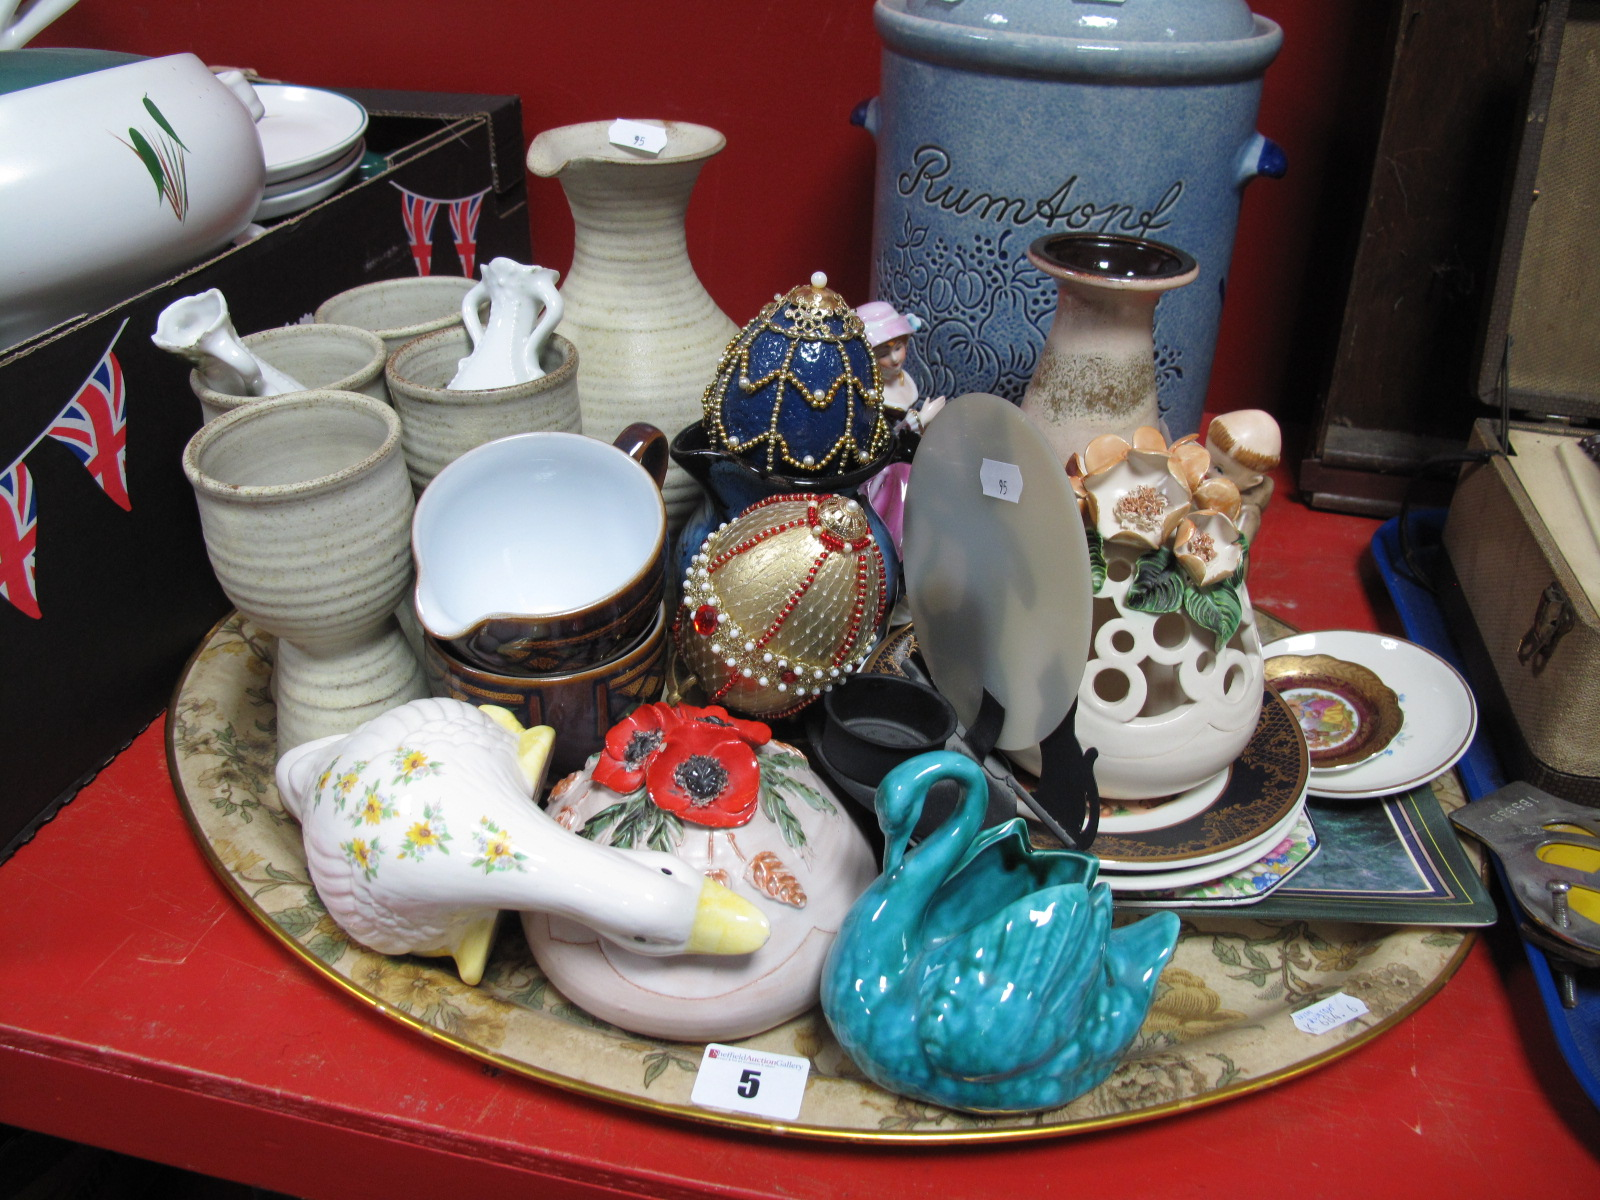 Lot 5 - Studio Pottery Stoneware Carafe and Four Goblets, Scheurich vase, decorative pottery, etc:- One Tray